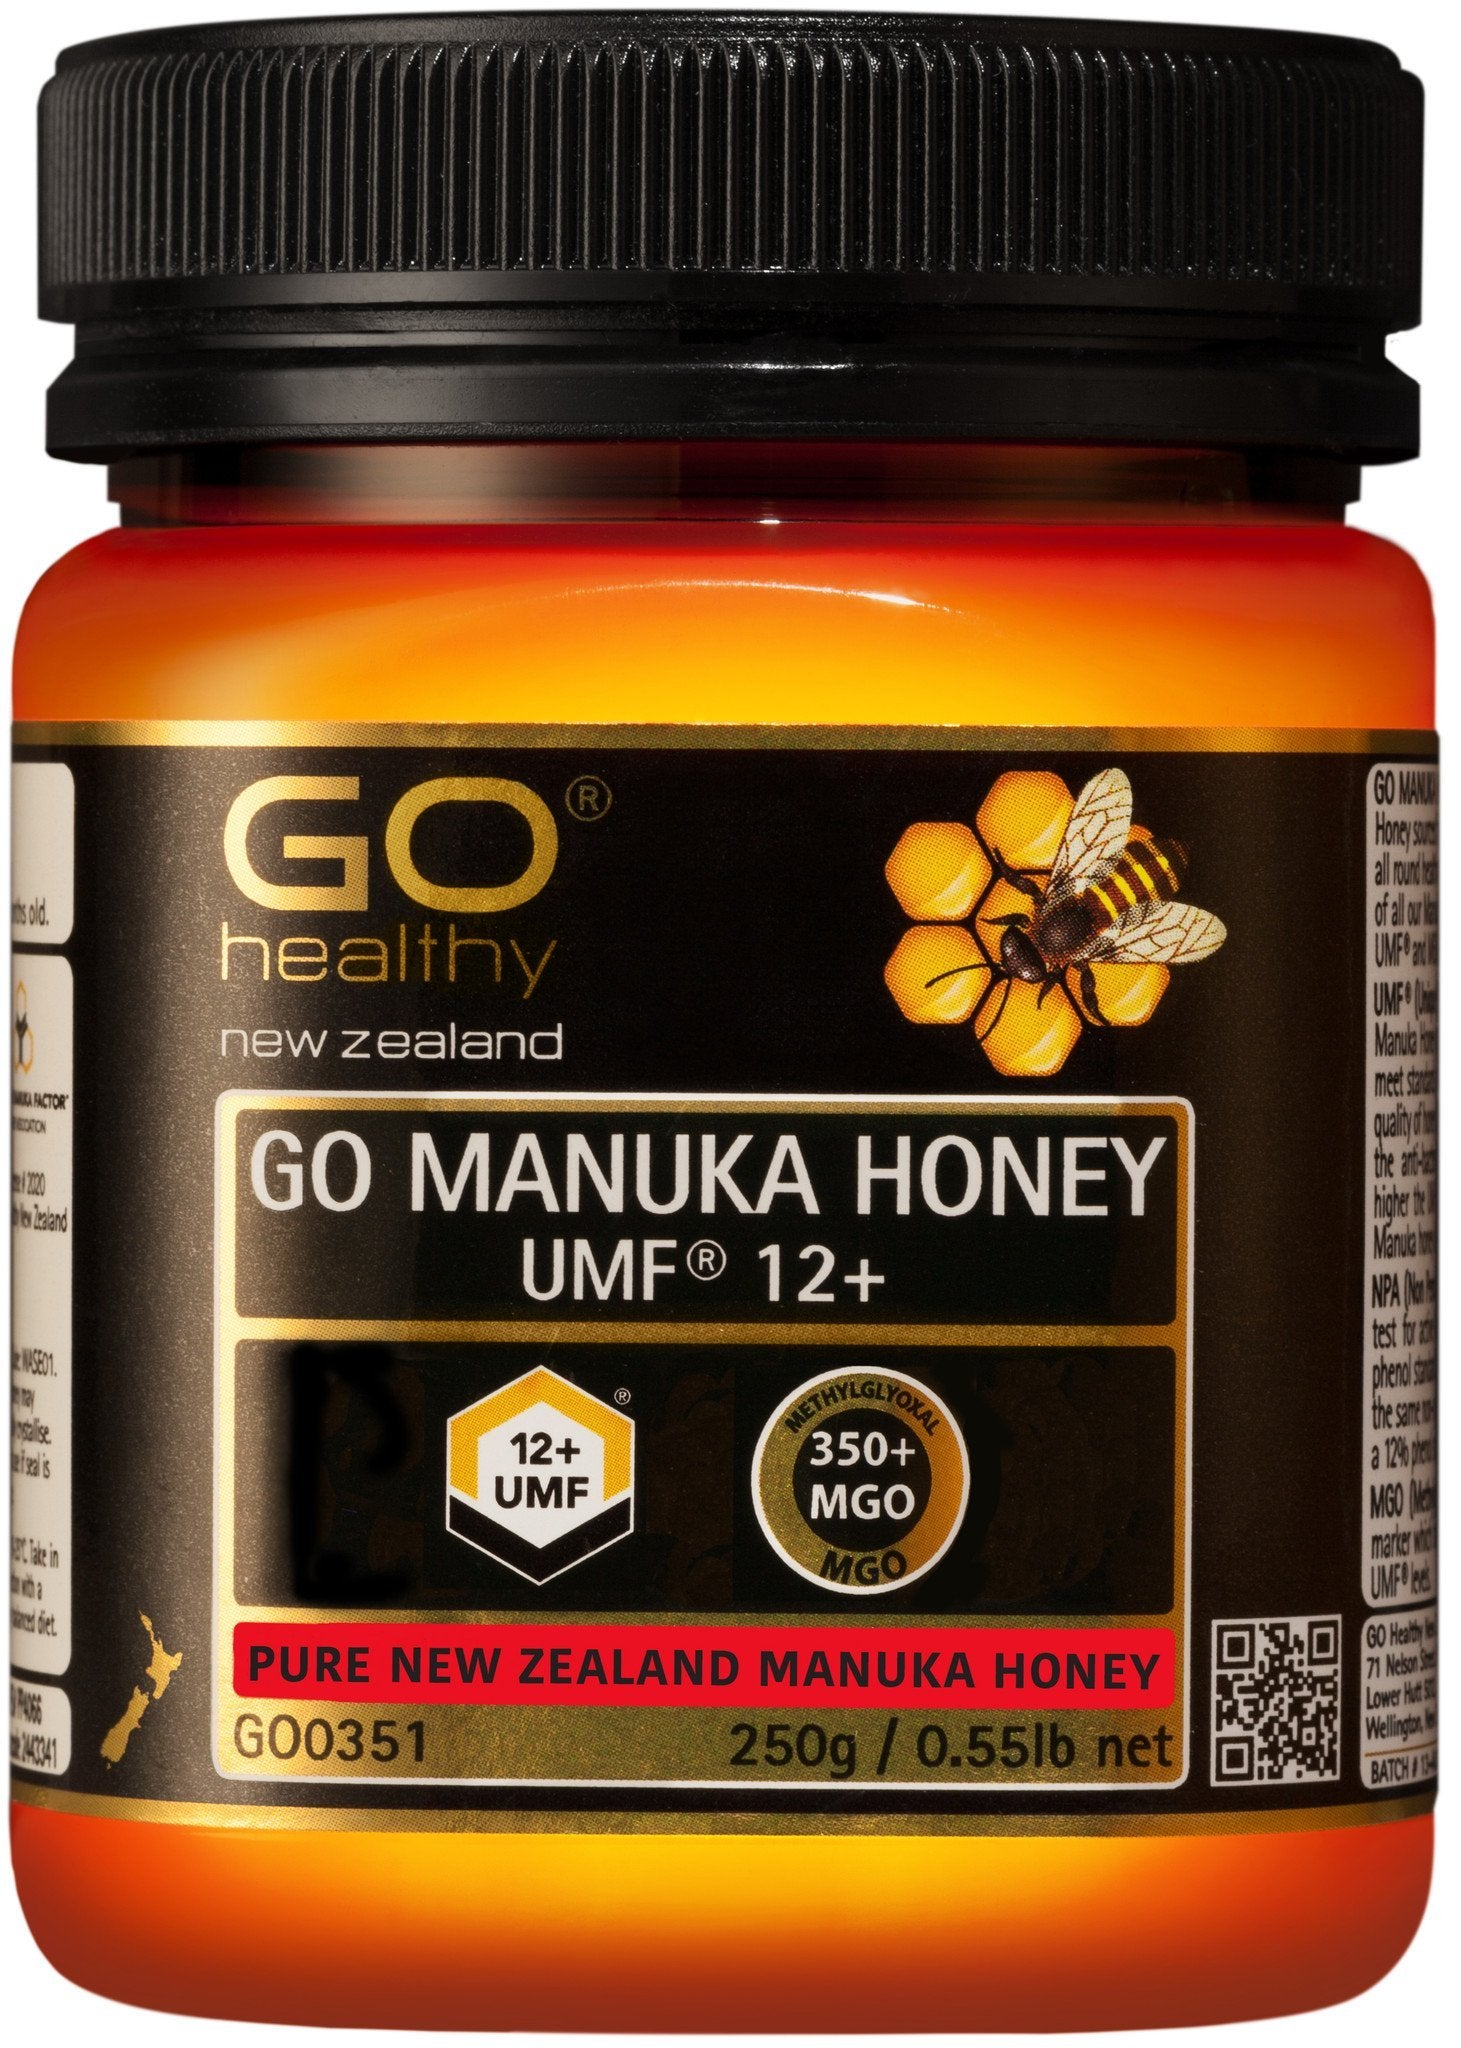 12+ UMF (350+ MGO) Go Manuka Honey 250g